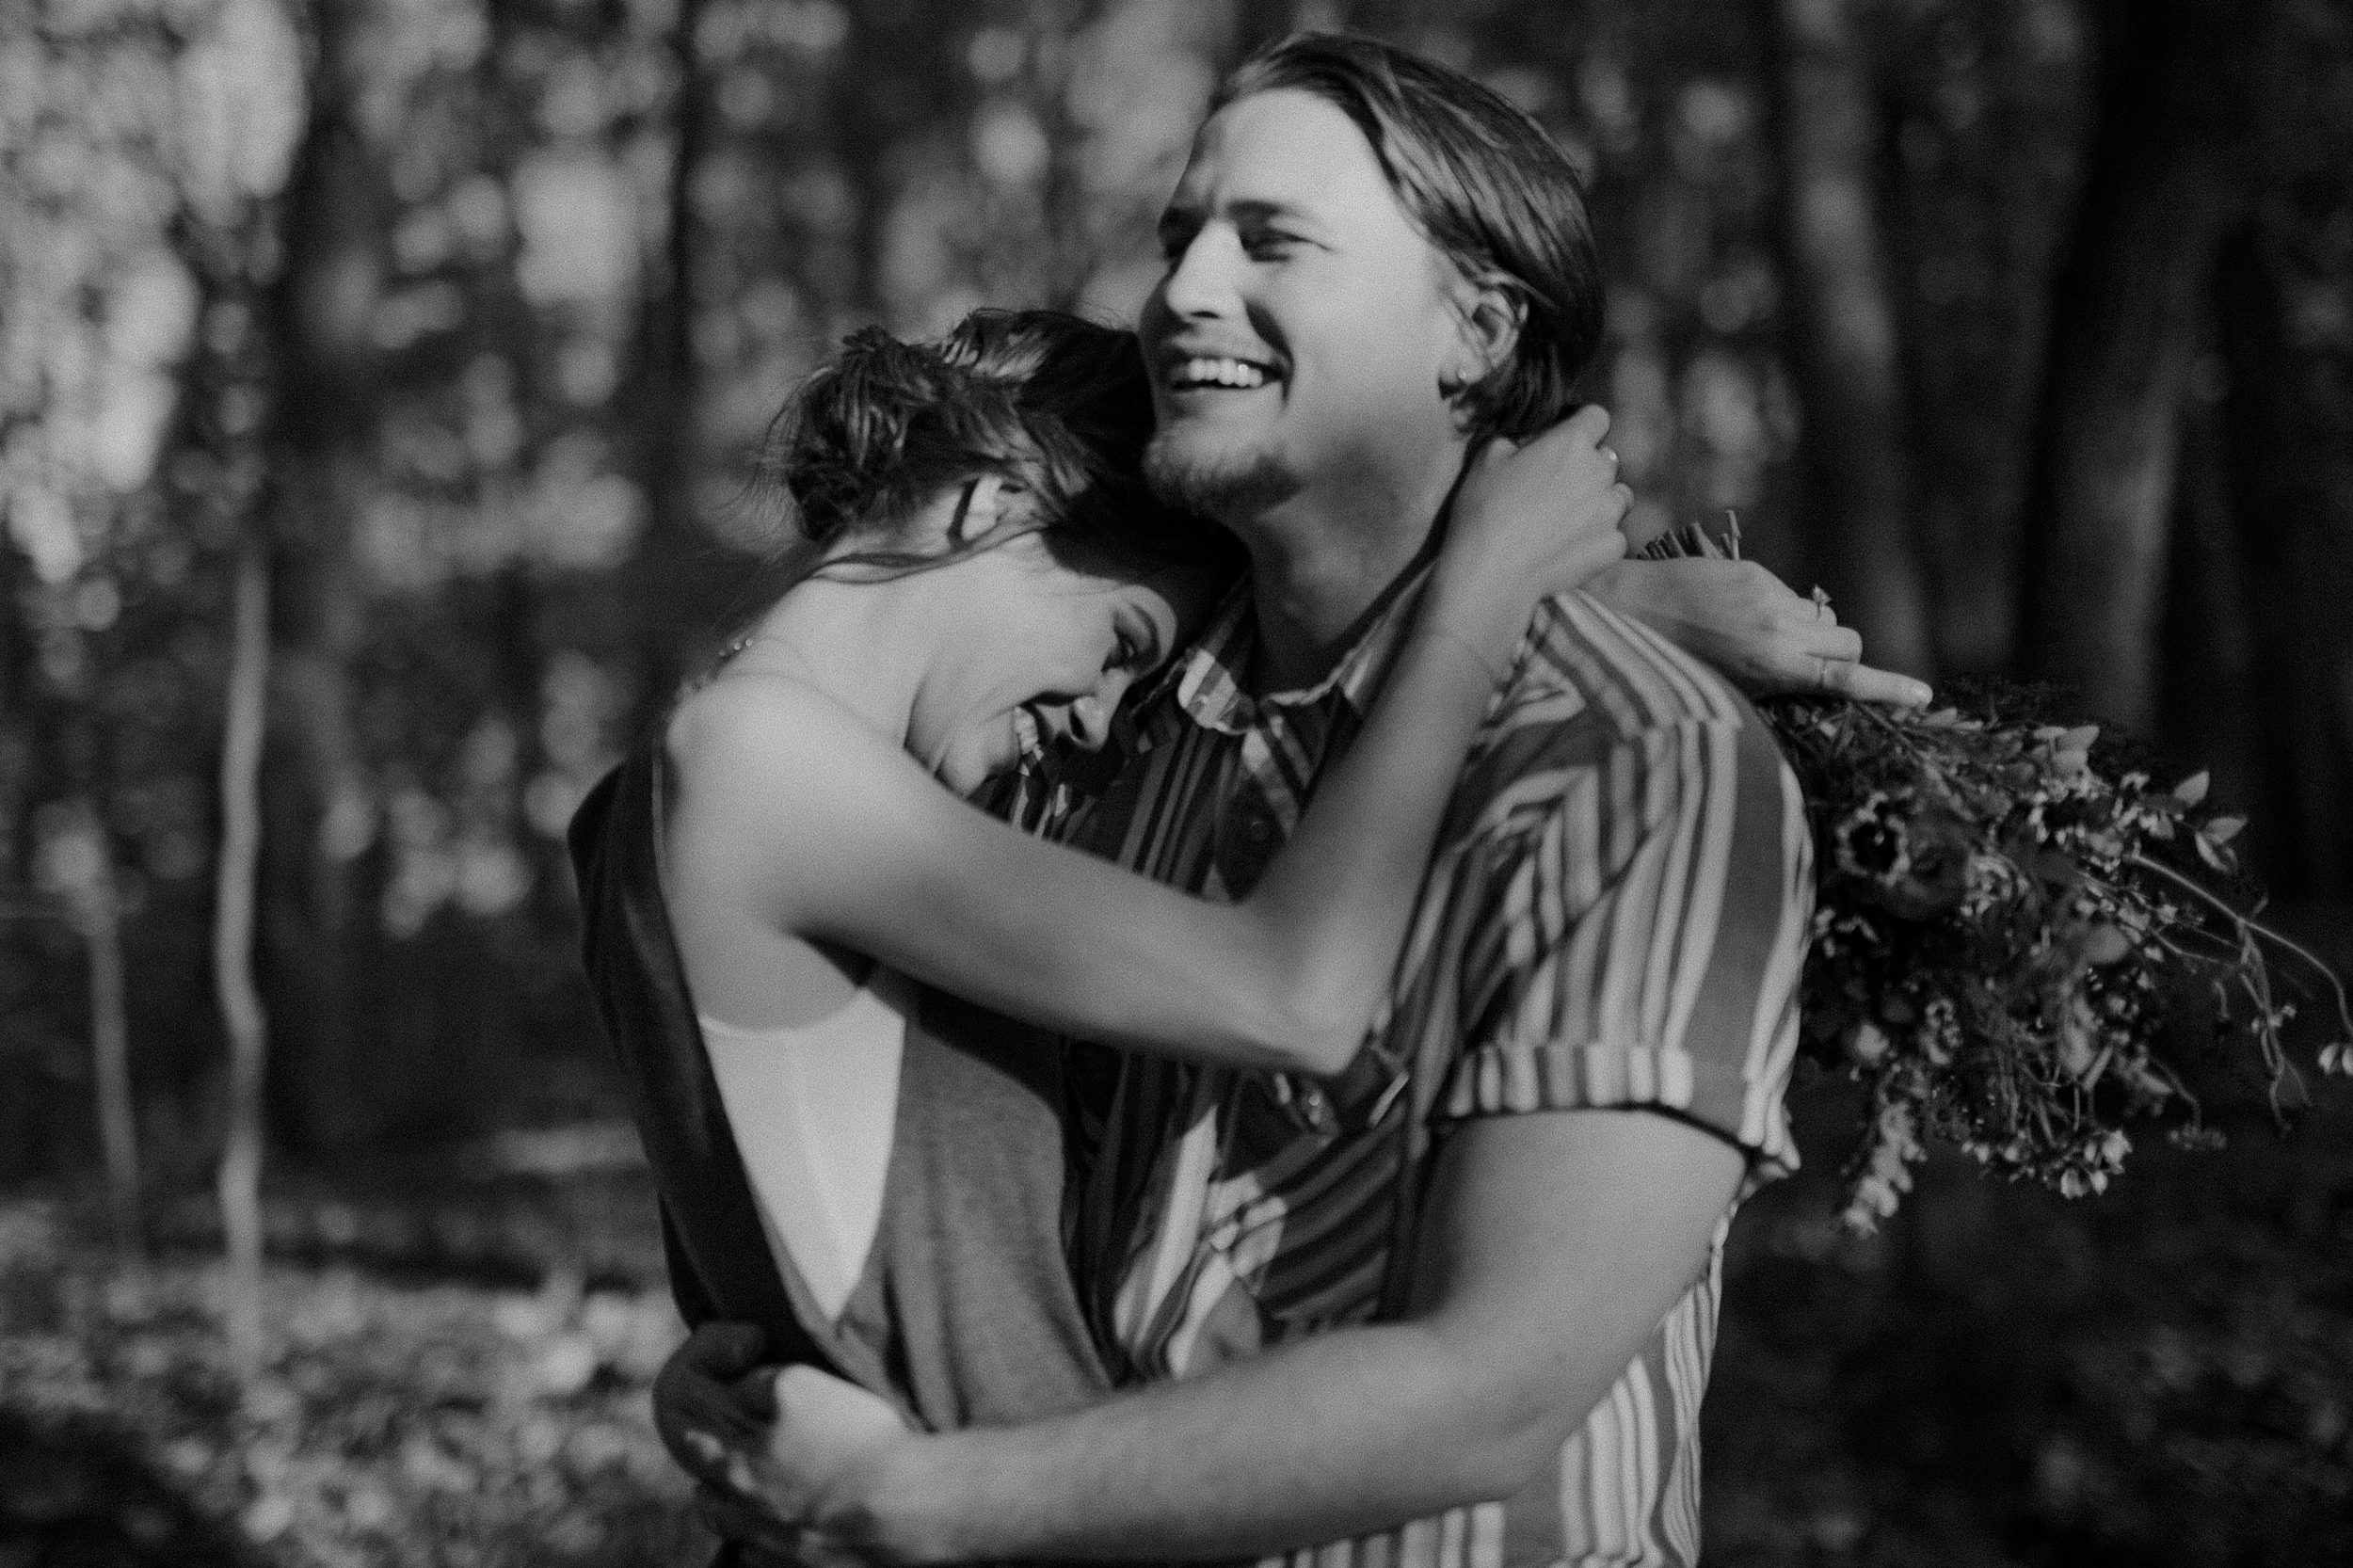 Hannah + Will Engagement Photos at Percy Warner Photography Anthology (7 of 30).jpg